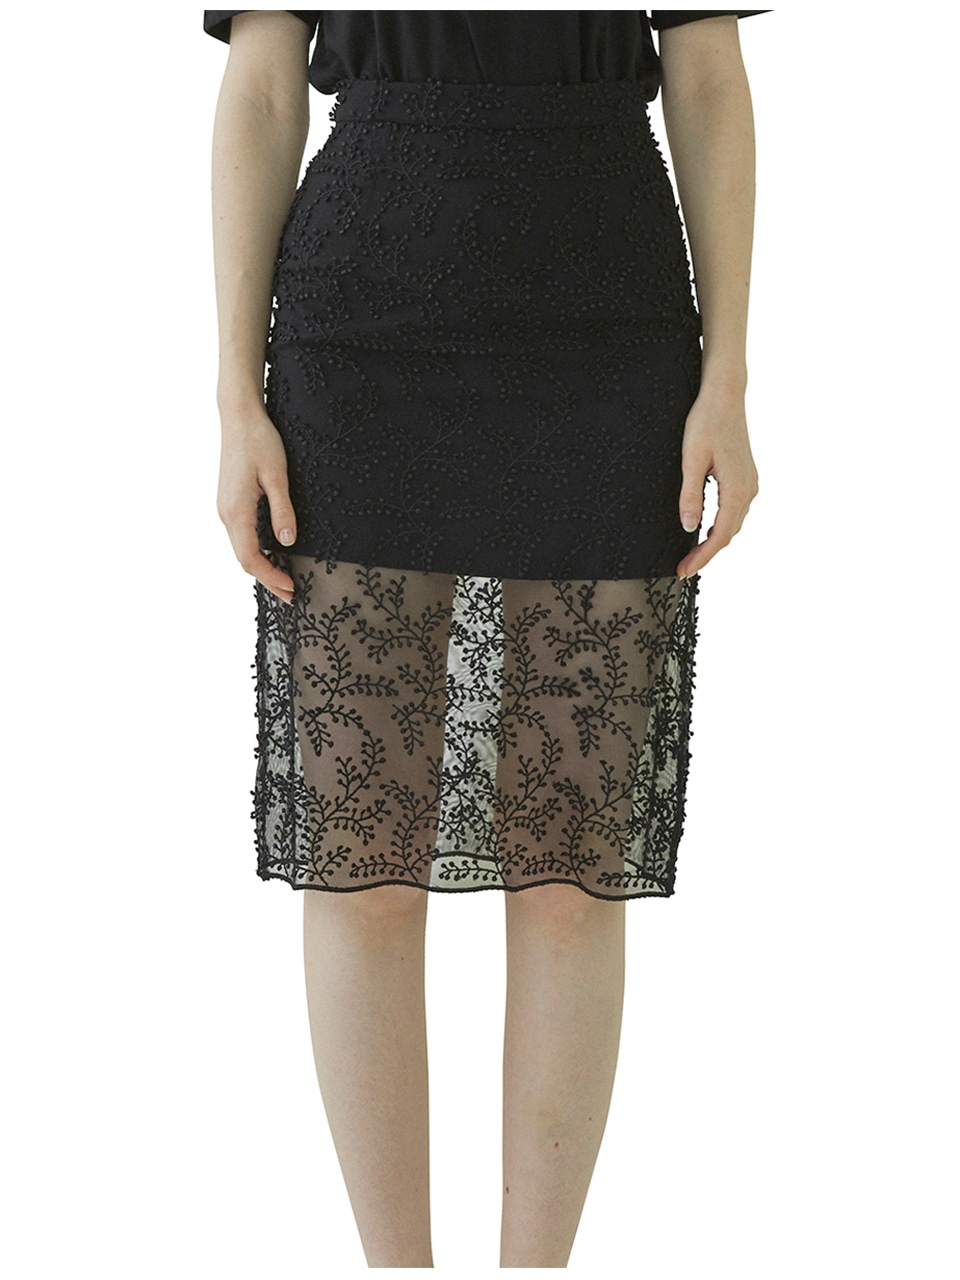 Bell Laced Long Skirt - black